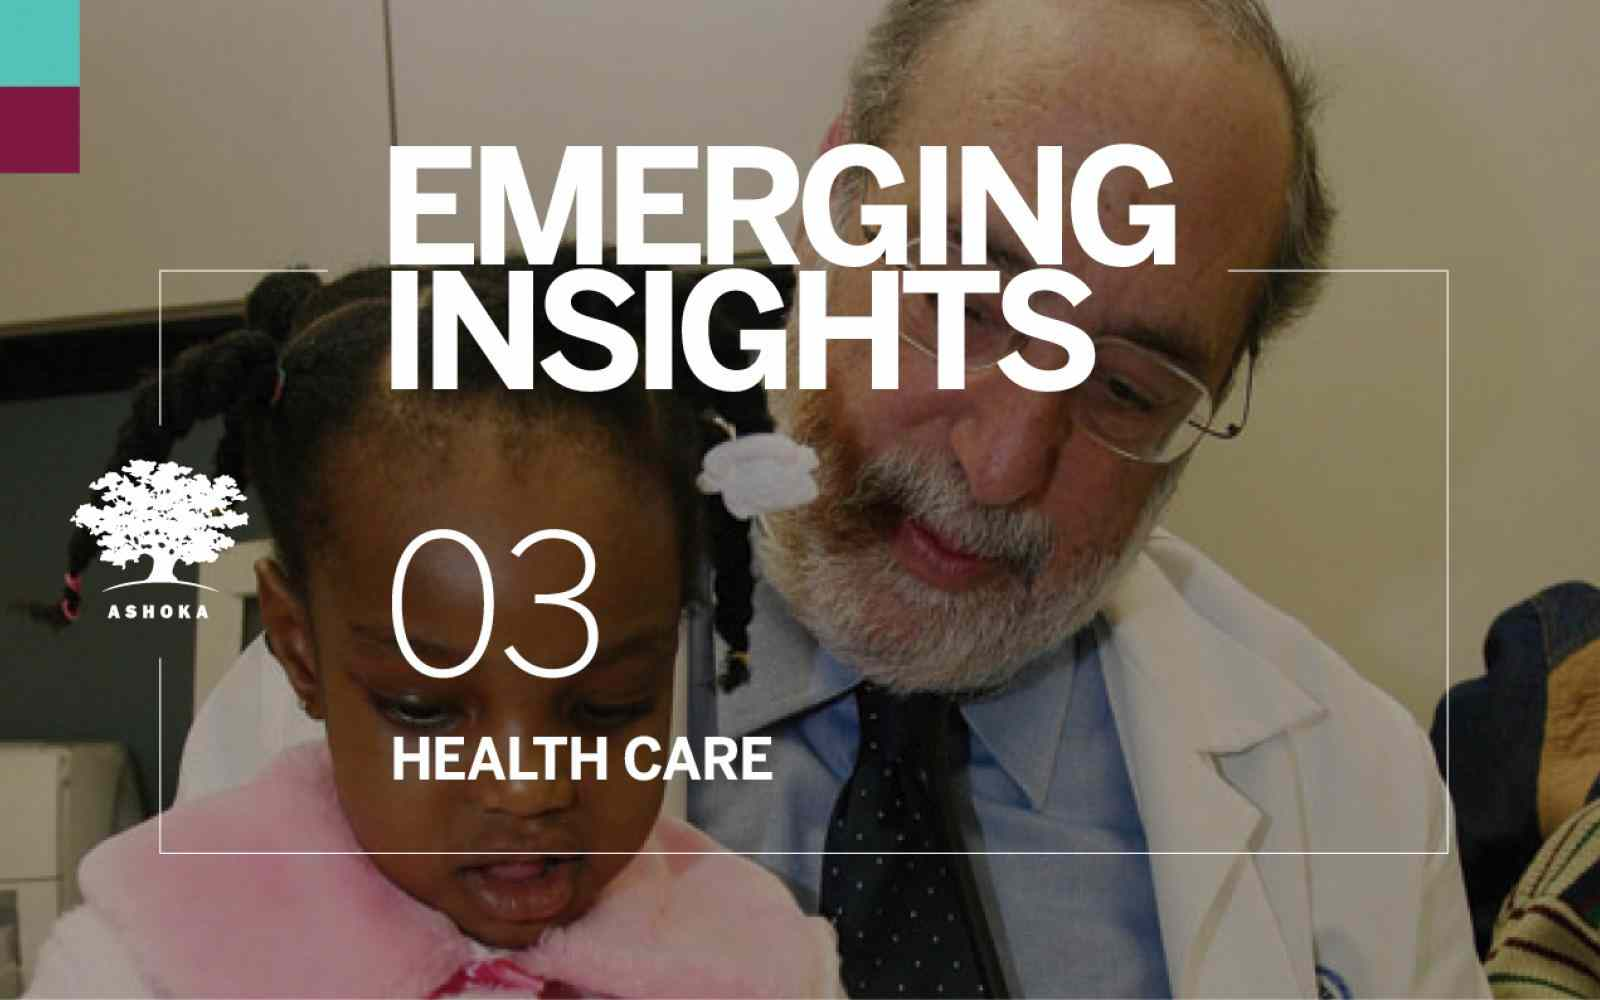 Emerging Insight 03 - Health Care